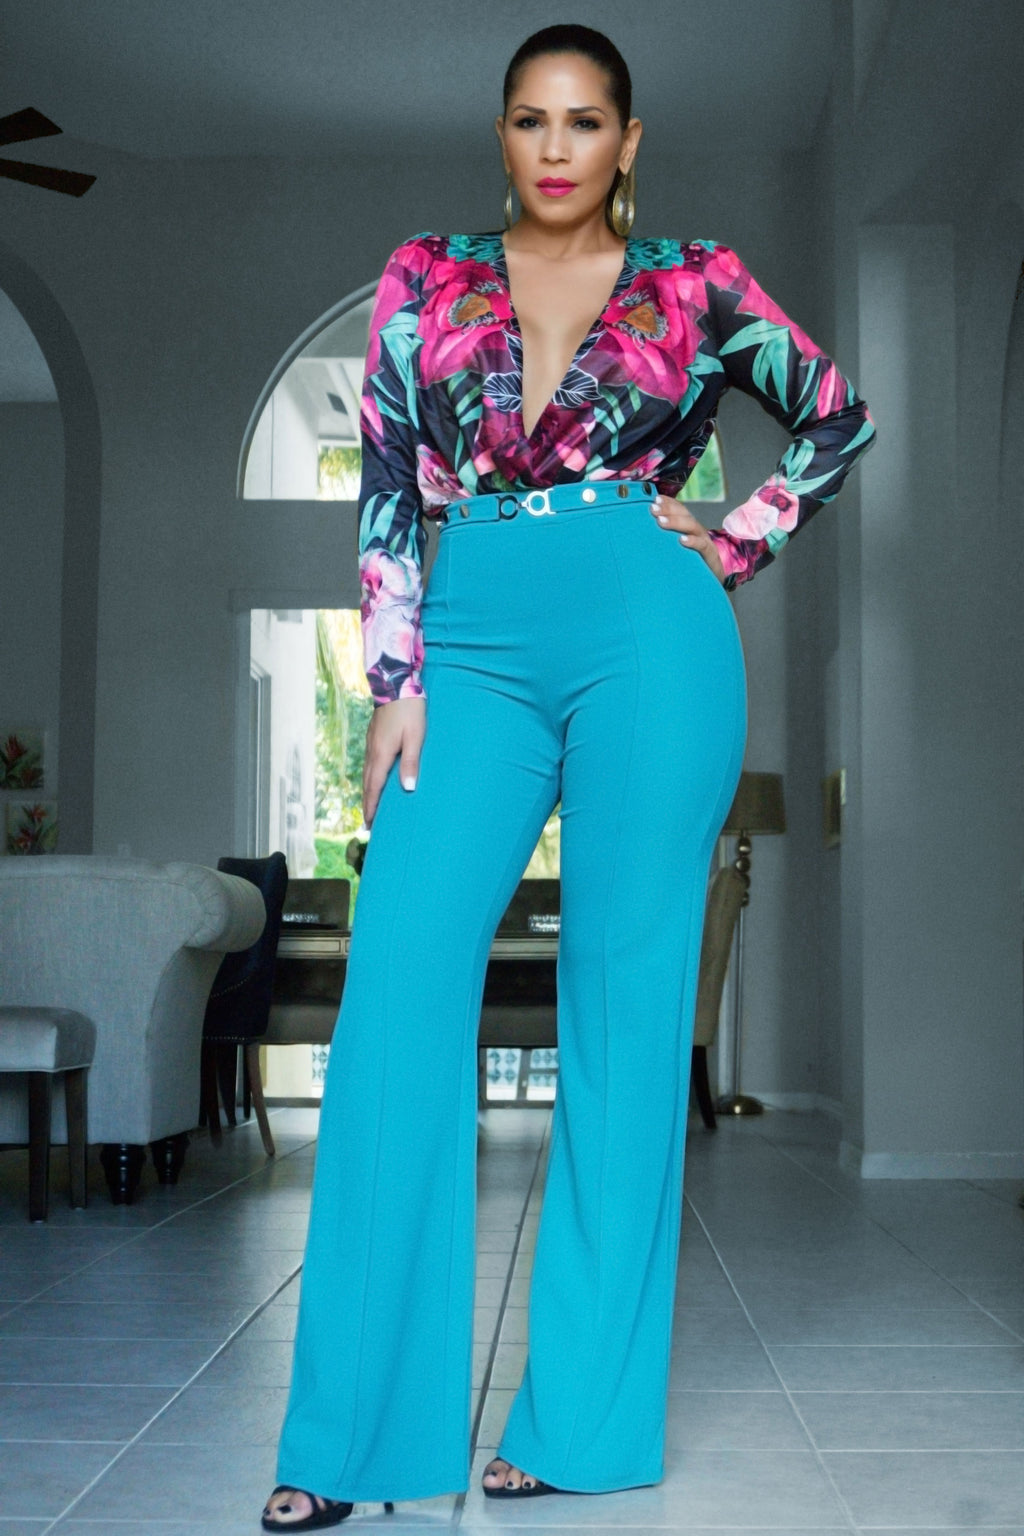 Fabianna Teal Fuchsia Floral Print Long Sleeved Bodysuit